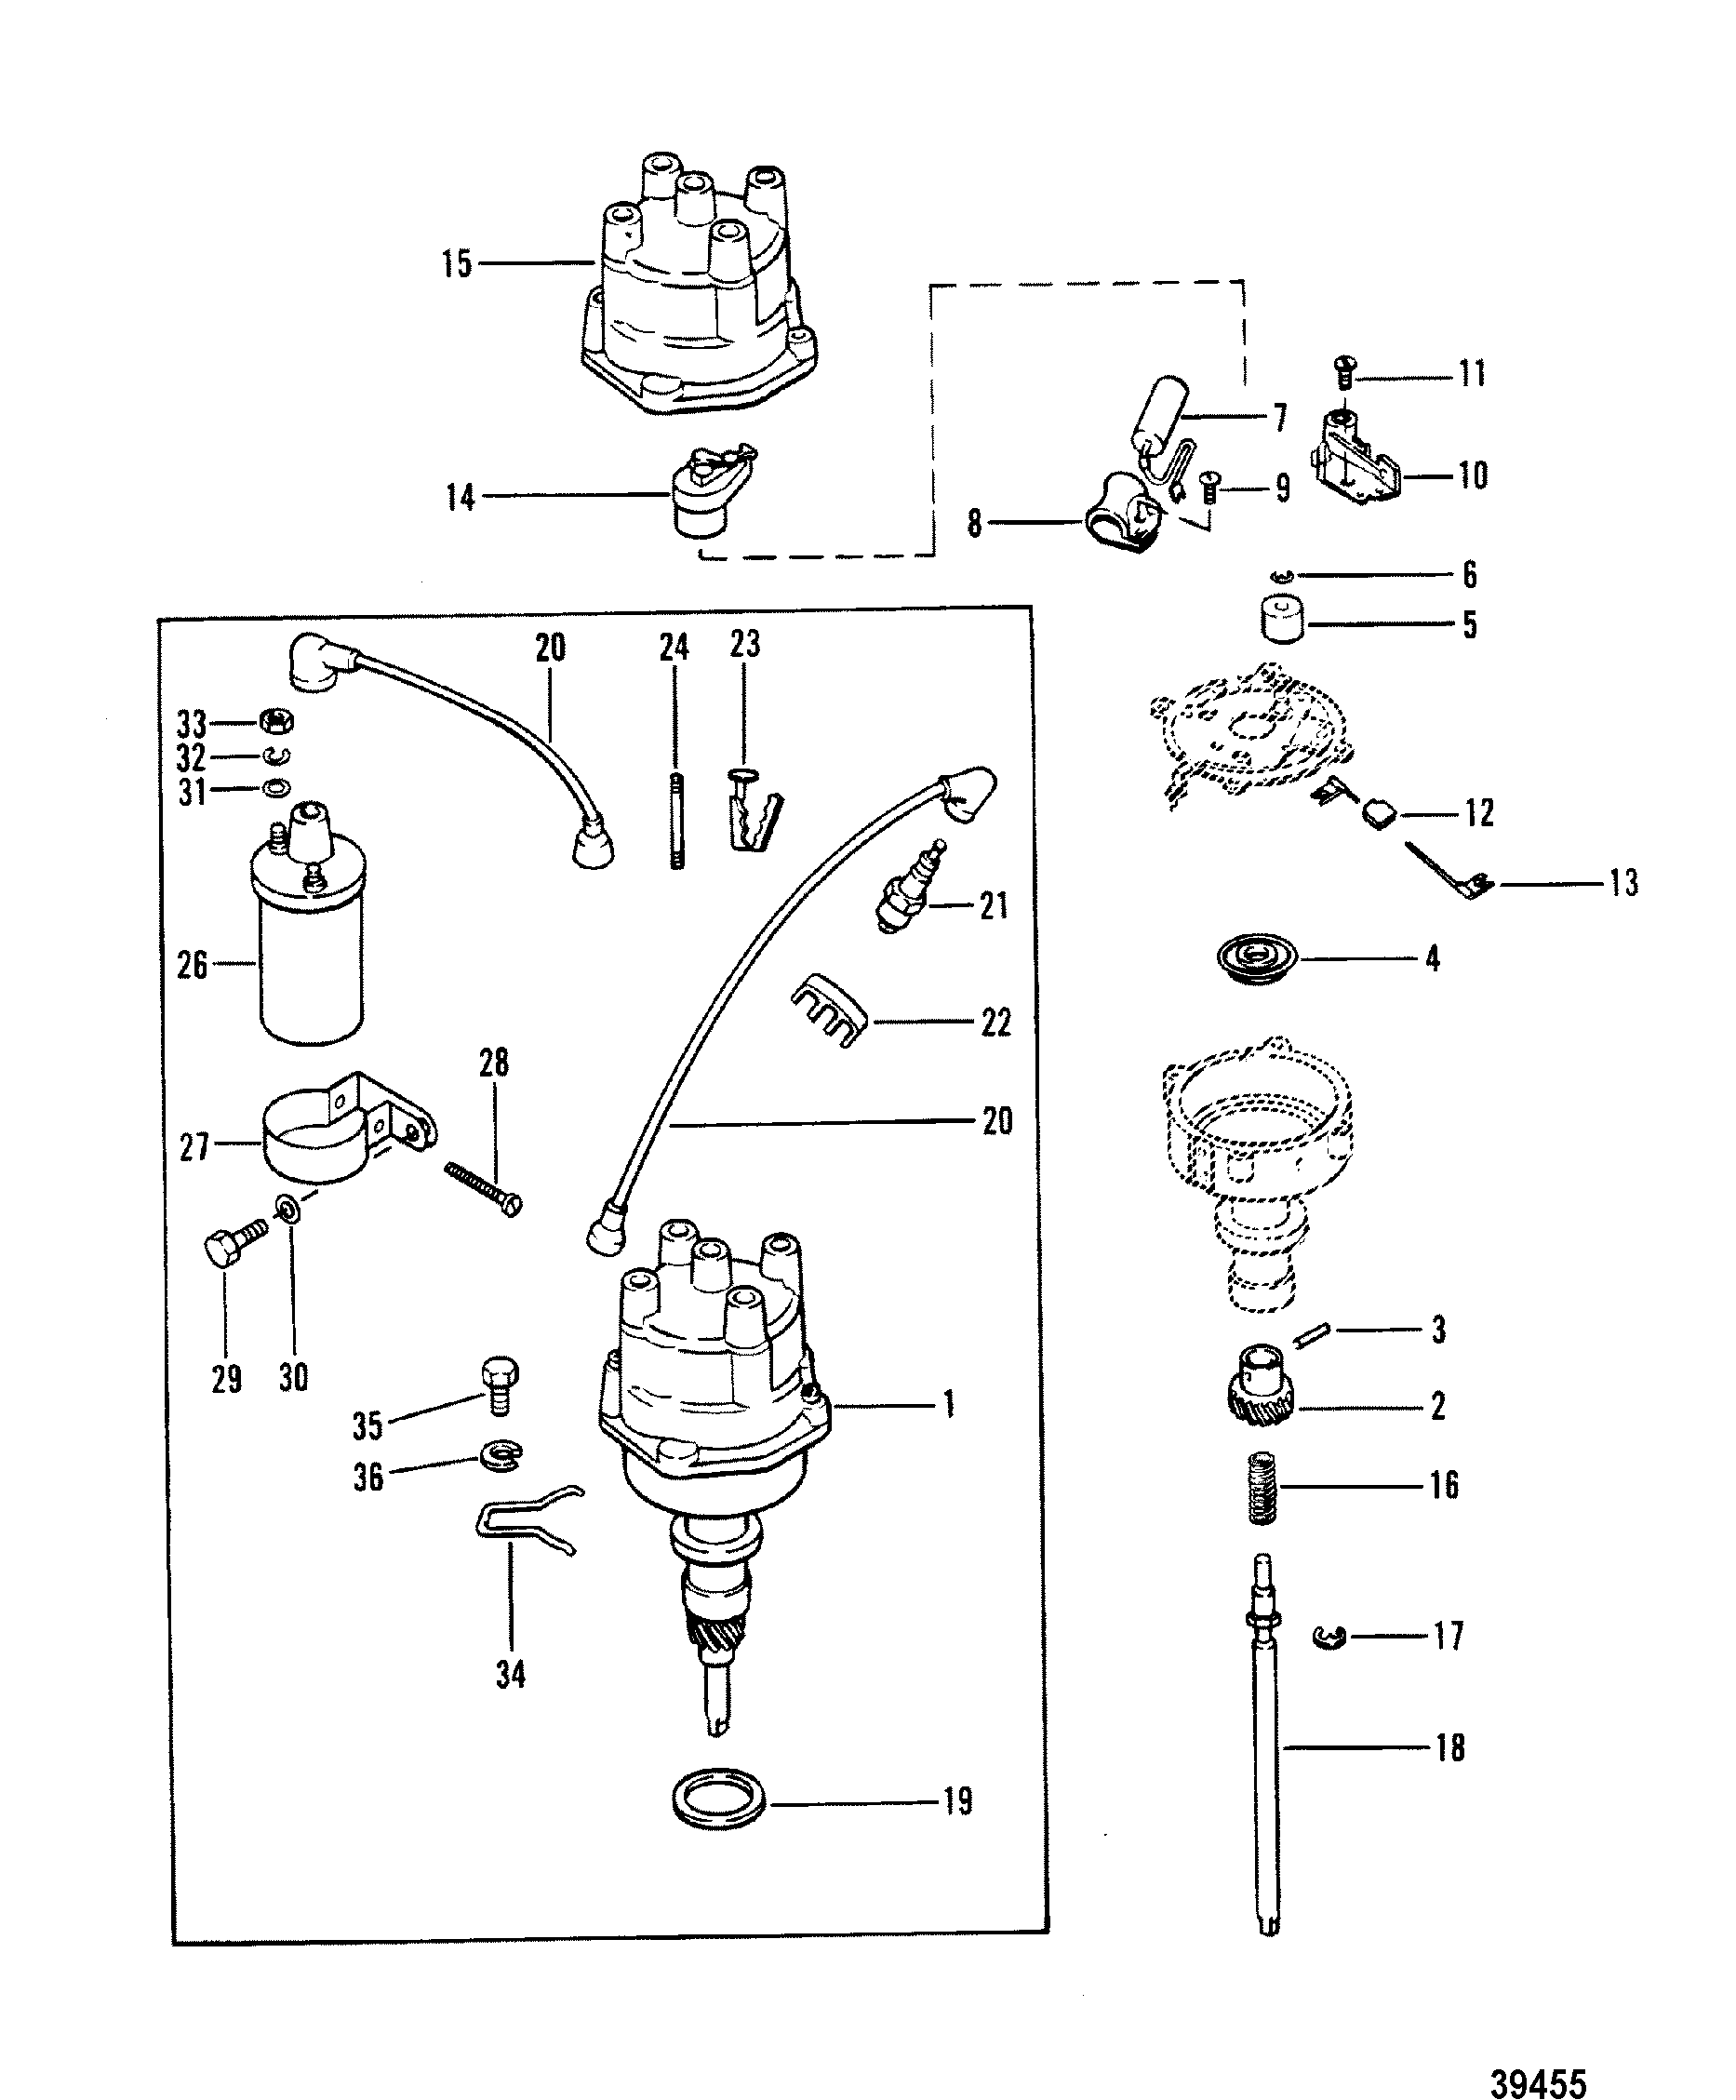 1987 Mercruiser 5 7 Wiring Diagram Electrical System Diagrams Distributor And Coil For 165 Hp 3 7l 170